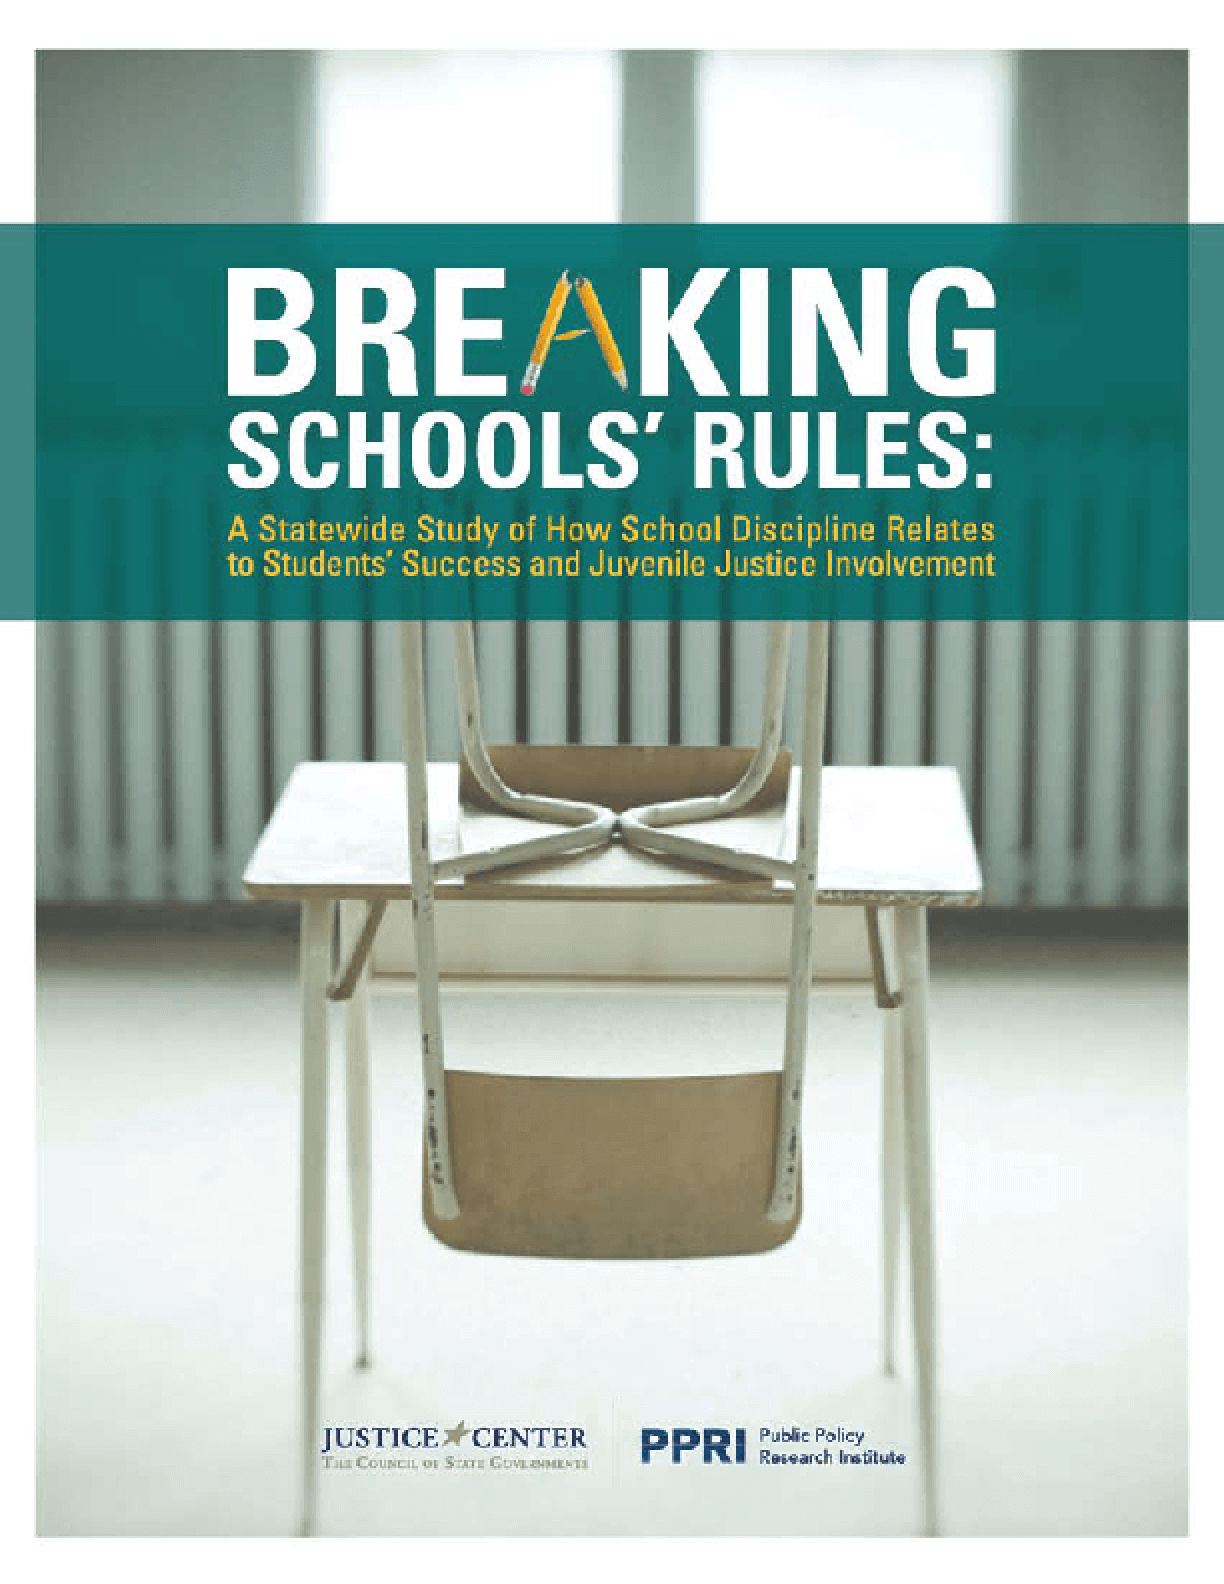 Breaking Schools' Rules: A Statewide Study on How School Discipline Relates to Students' Success and Juvenile Justice Involvement